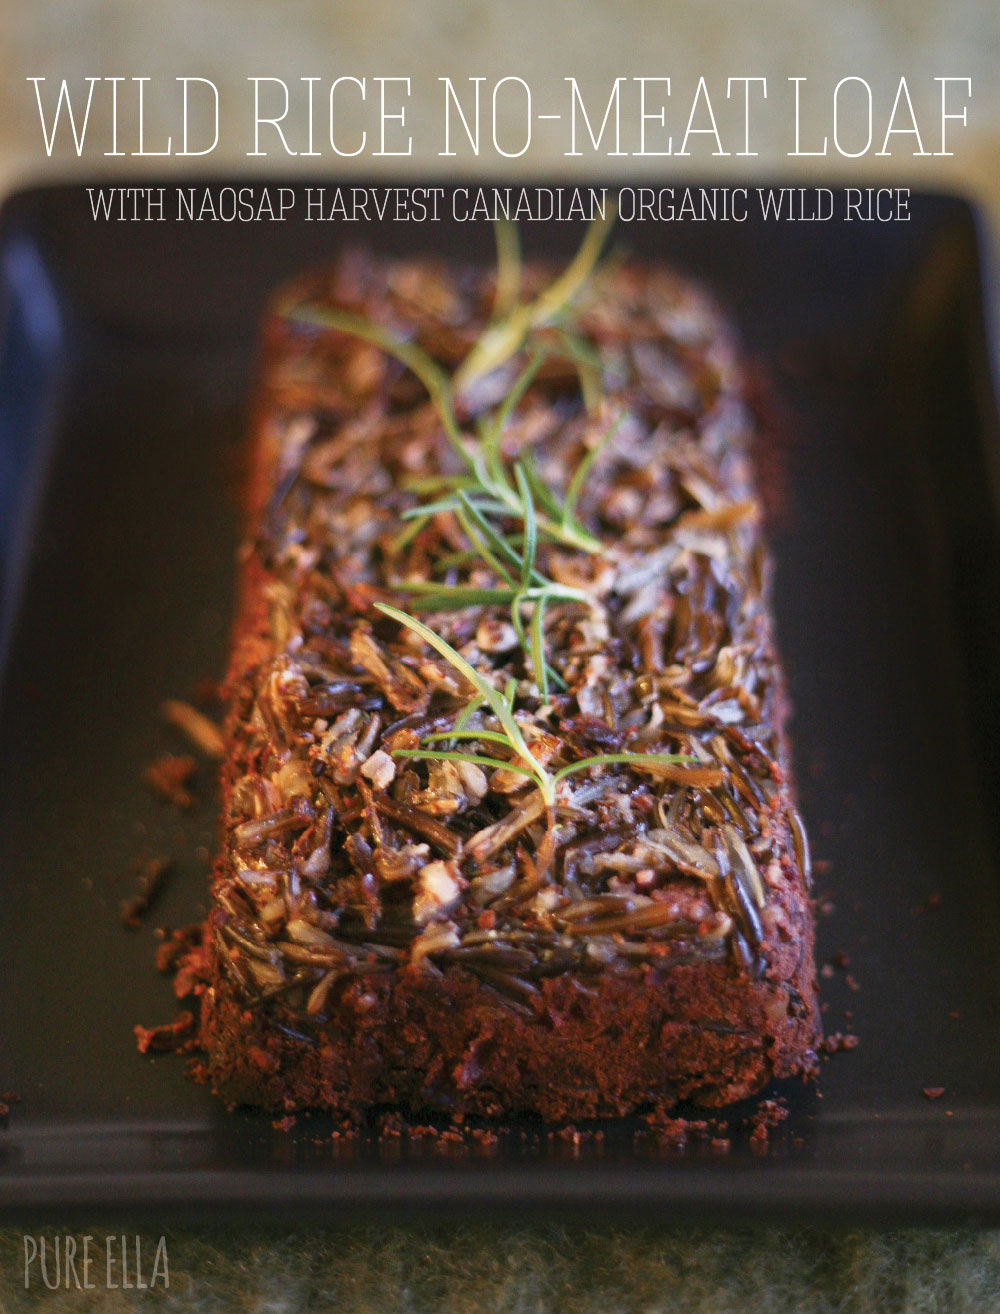 Pure-Ella-Wild-Rice-Vegan-No-Meat-Loaf